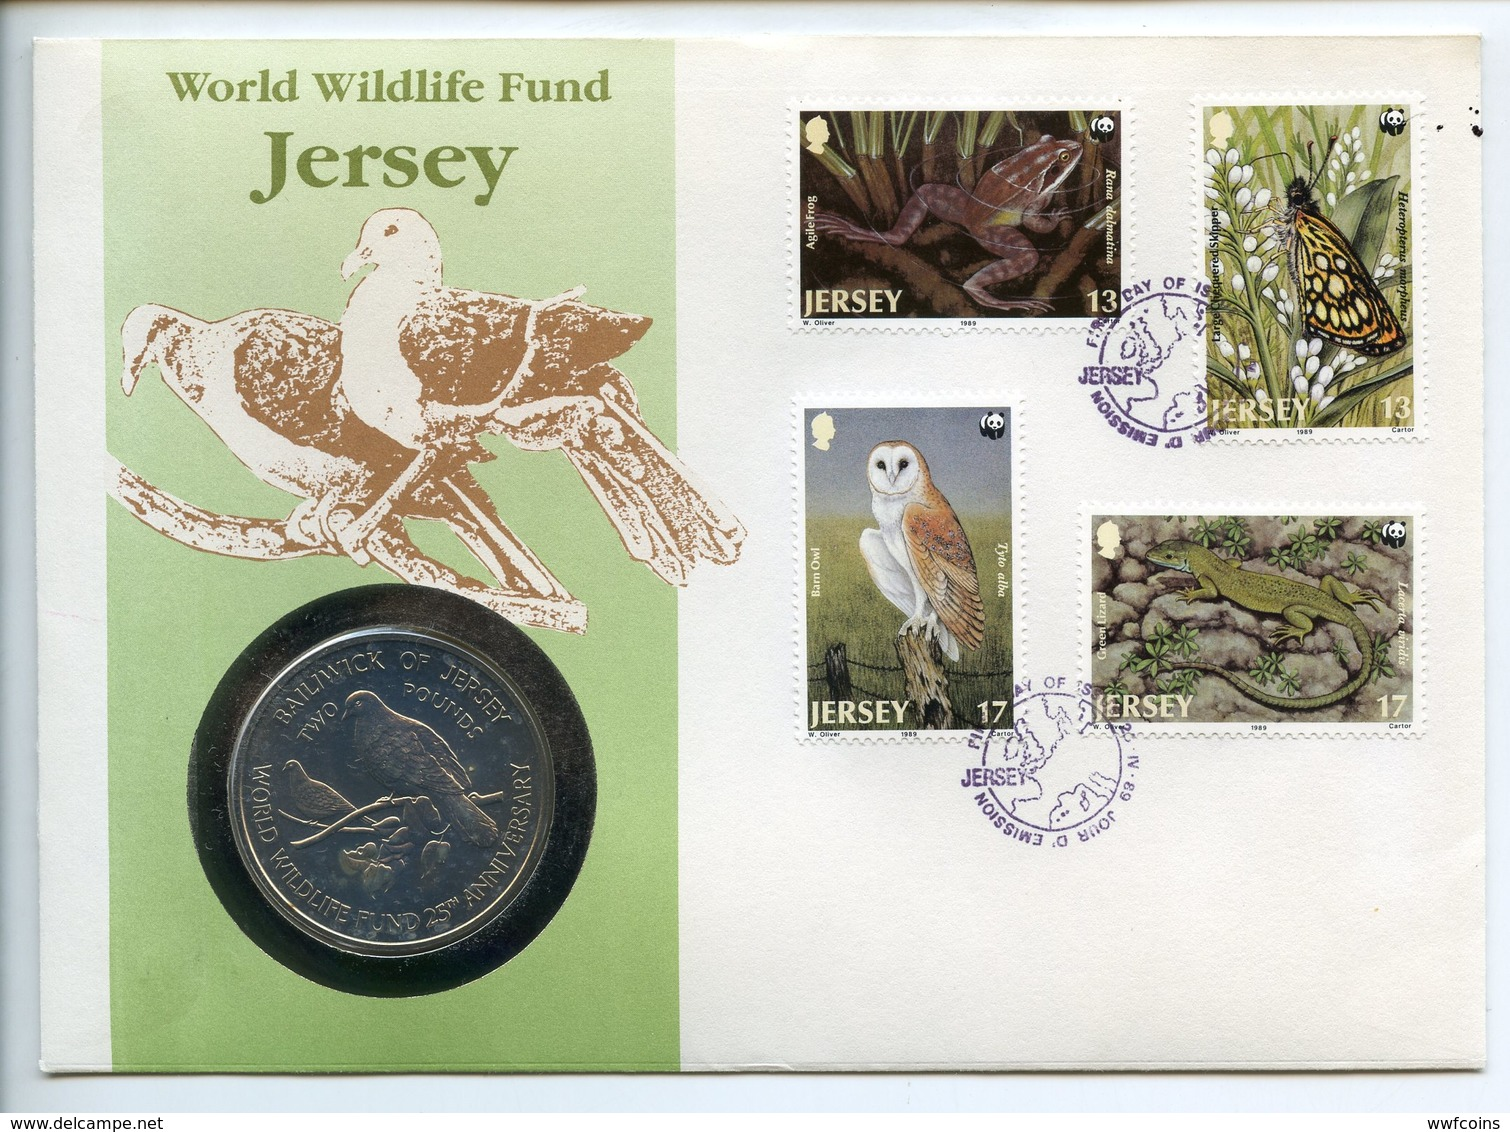 POSTCARD STAMP BUSTA FRANCOBOLLO JERSEY 1 POUND 1987 ENDANGERED WORLD WILDLIFE FOUND BUTTERFLY FROG OWL FIRST DAY OF ISS - Guernesey